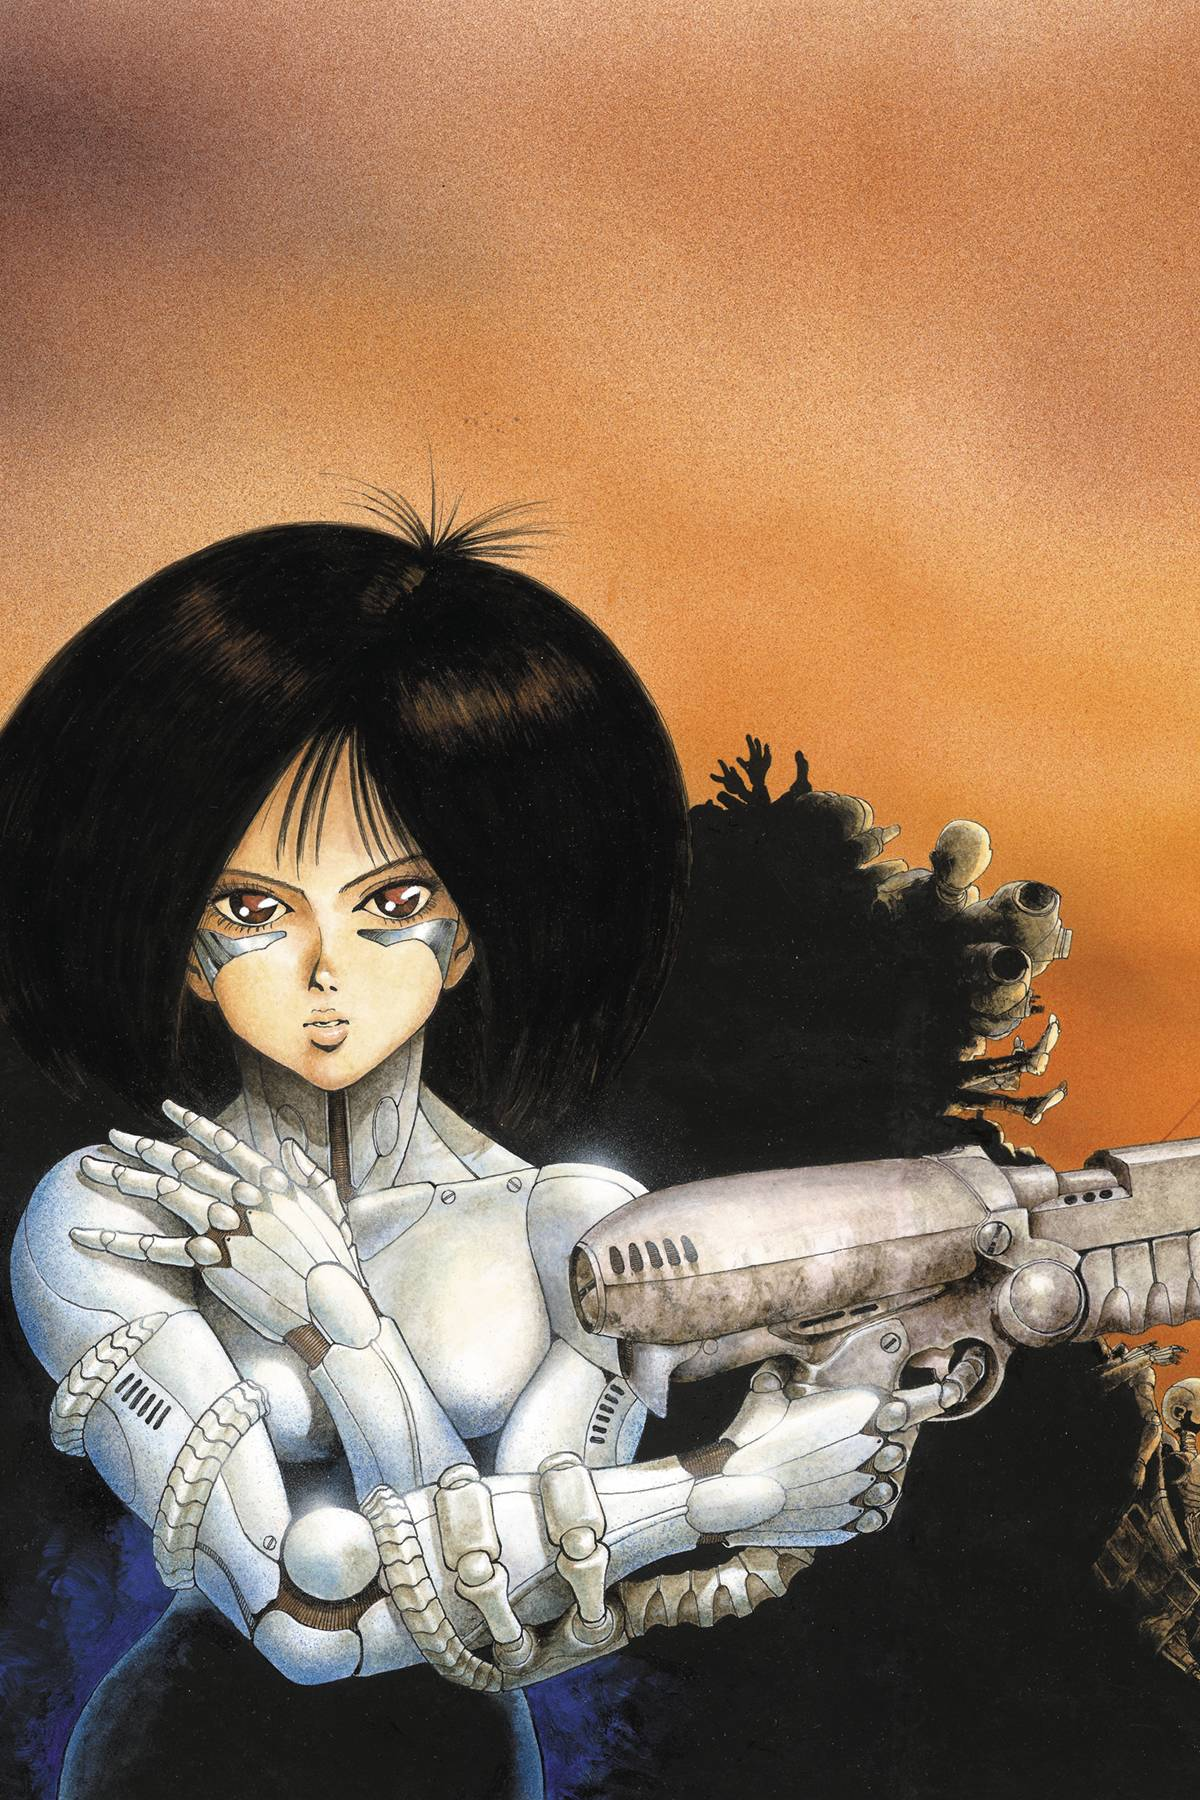 BATTLE ANGEL ALITA DELUXE ED HC VOL 01